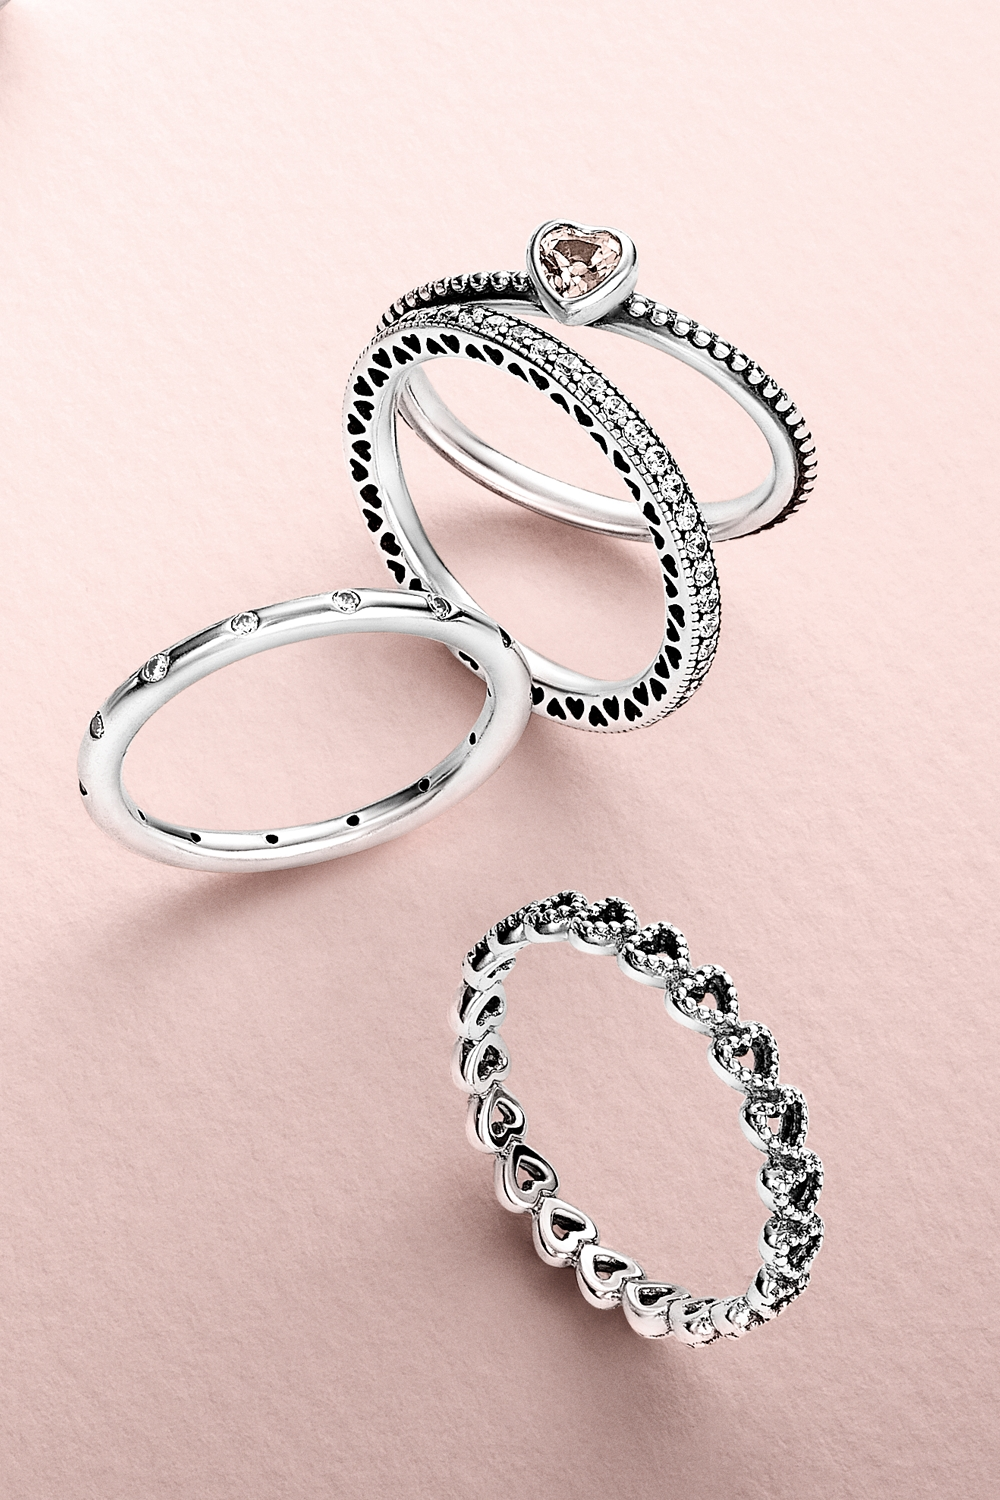 Create A Romantic Lookstacking Cute Heart Shaped Rings Pertaining To Latest Pandora Toe Rings Jewellery (View 15 of 15)